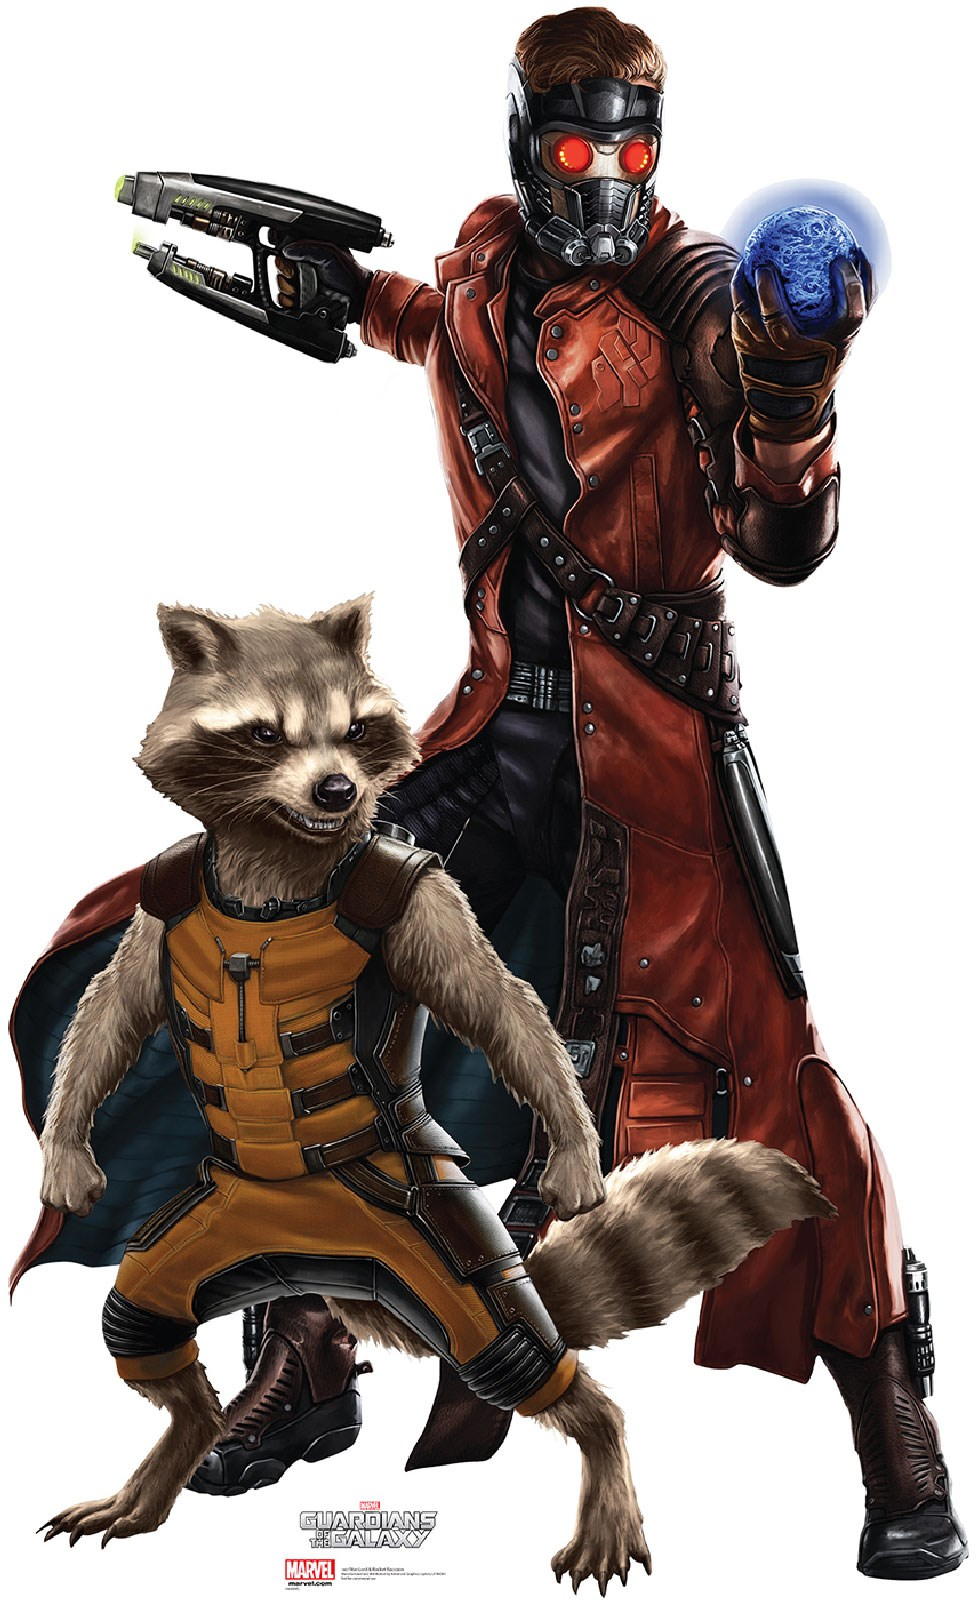 Guardians of the Galaxy - Starlord & Rocket Cardboard Stand Up 6.25